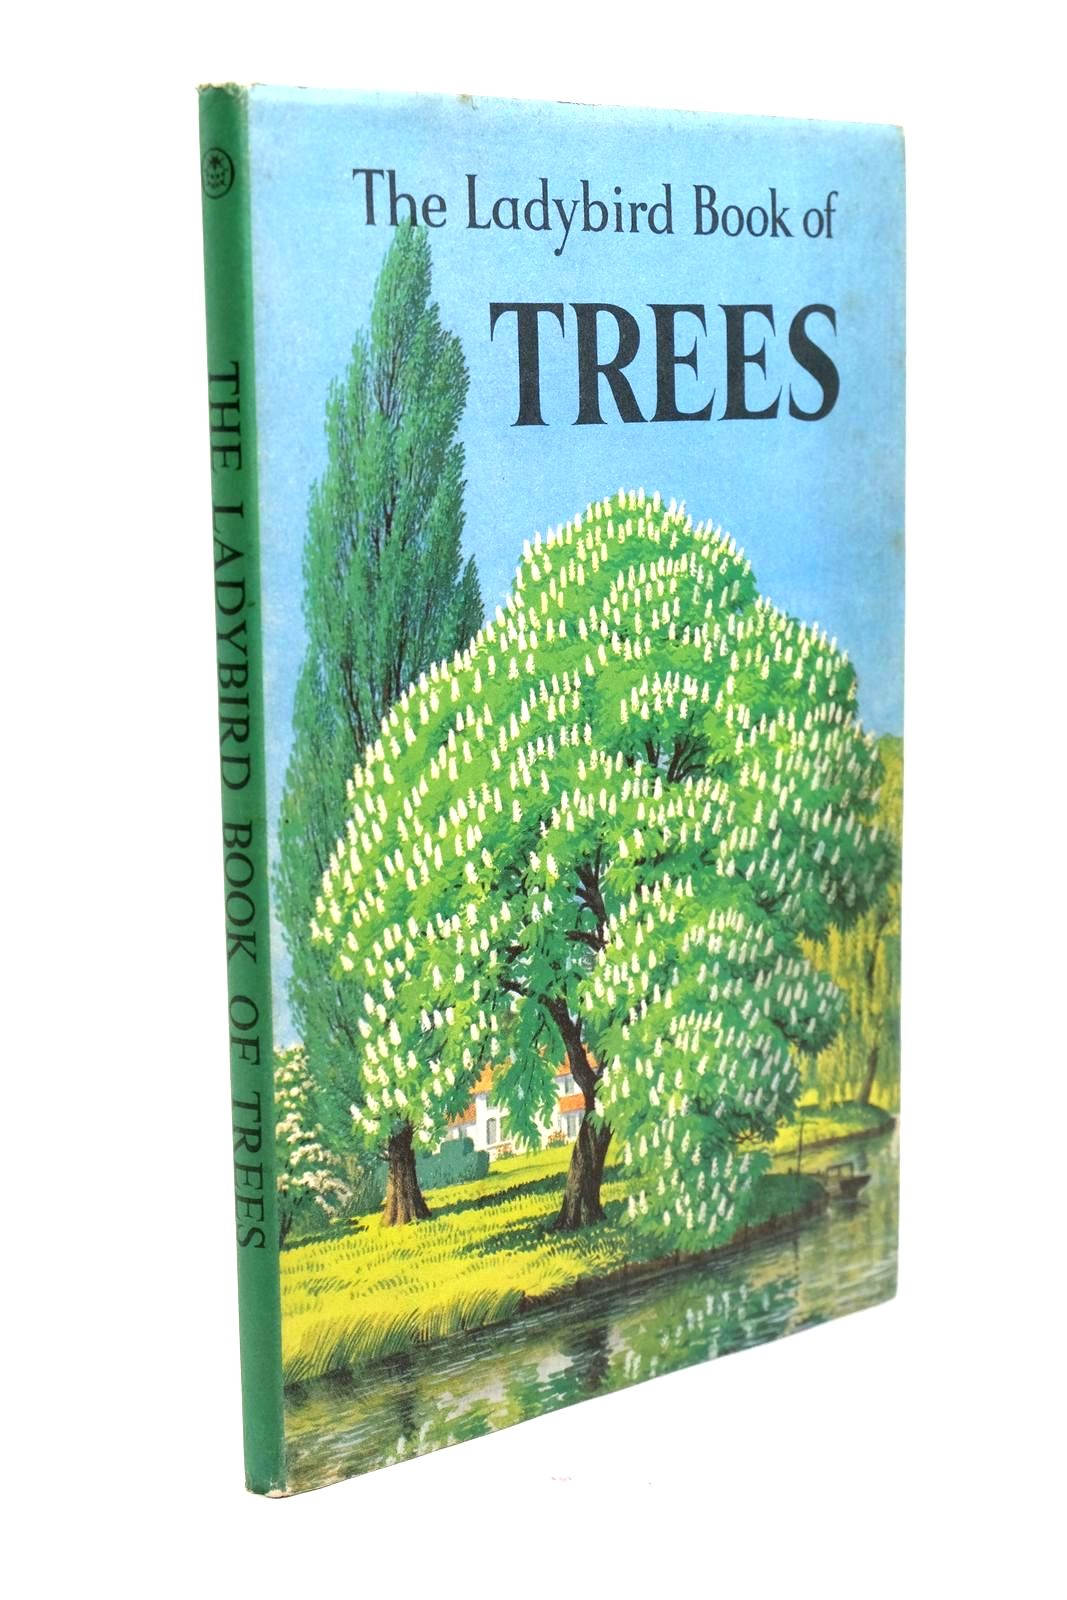 Photo of THE LADYBIRD BOOK OF TREES written by Vesey-Fitzgerald, Brian illustrated by Badmin, S.R. published by Wills & Hepworth Ltd. (STOCK CODE: 1321321)  for sale by Stella & Rose's Books